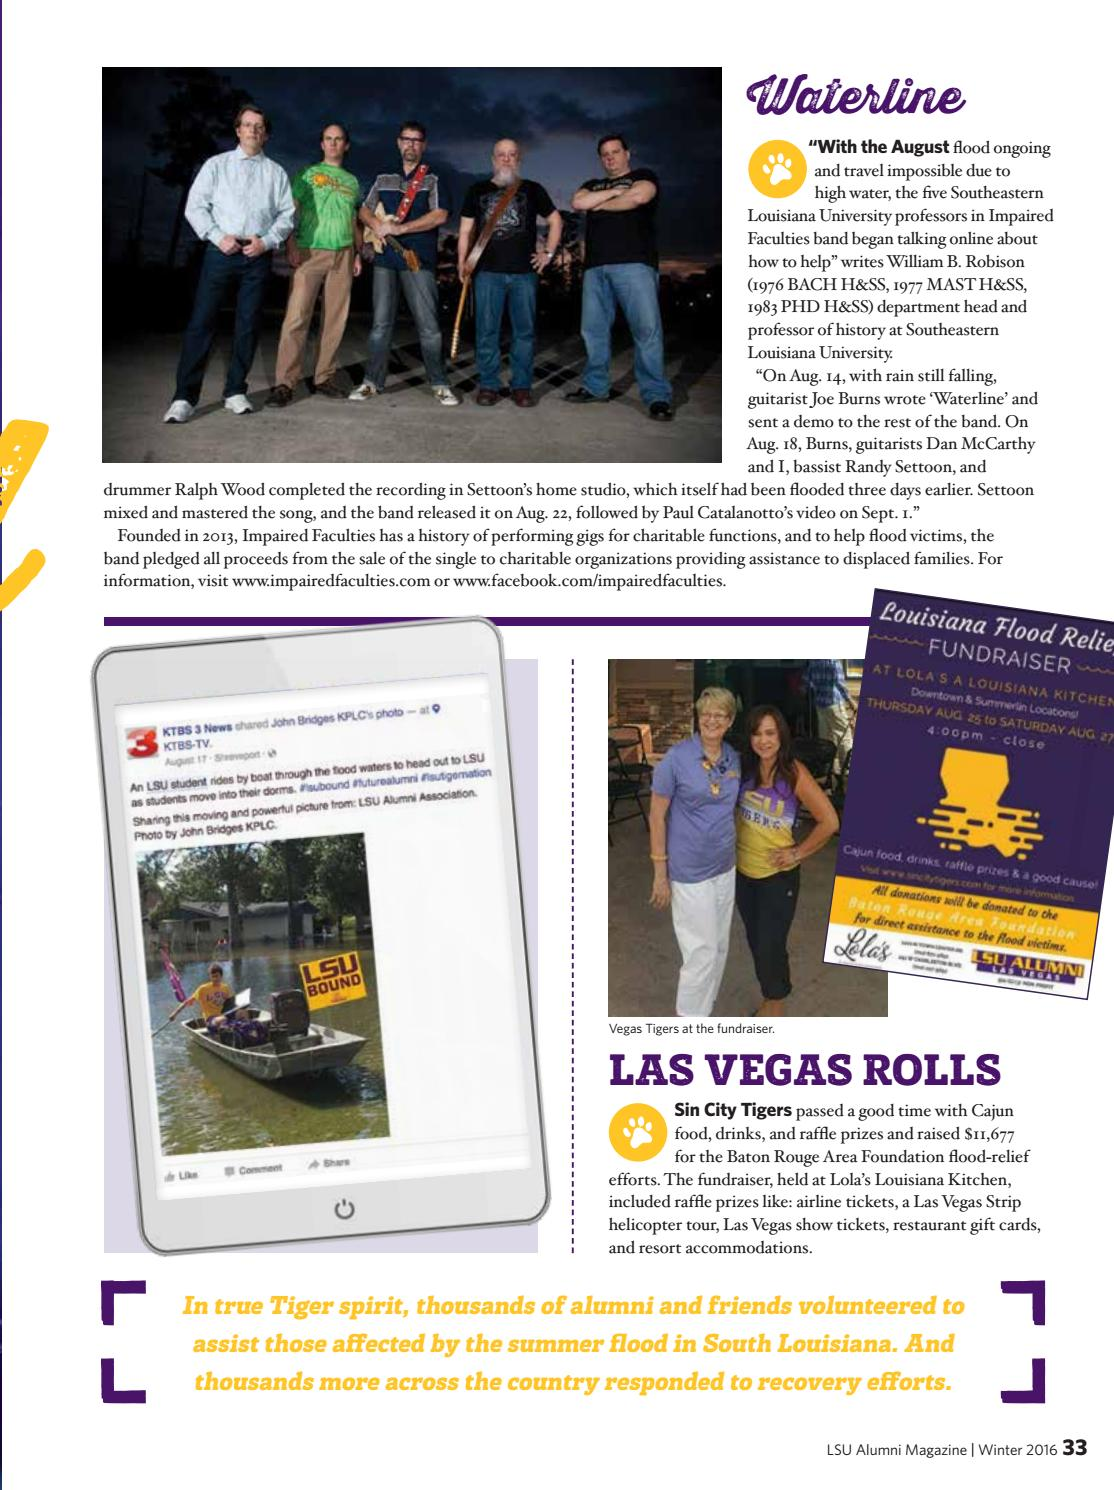 Winter 2016, Volume 92, Number 4 by LSU Alumni Association - issuu